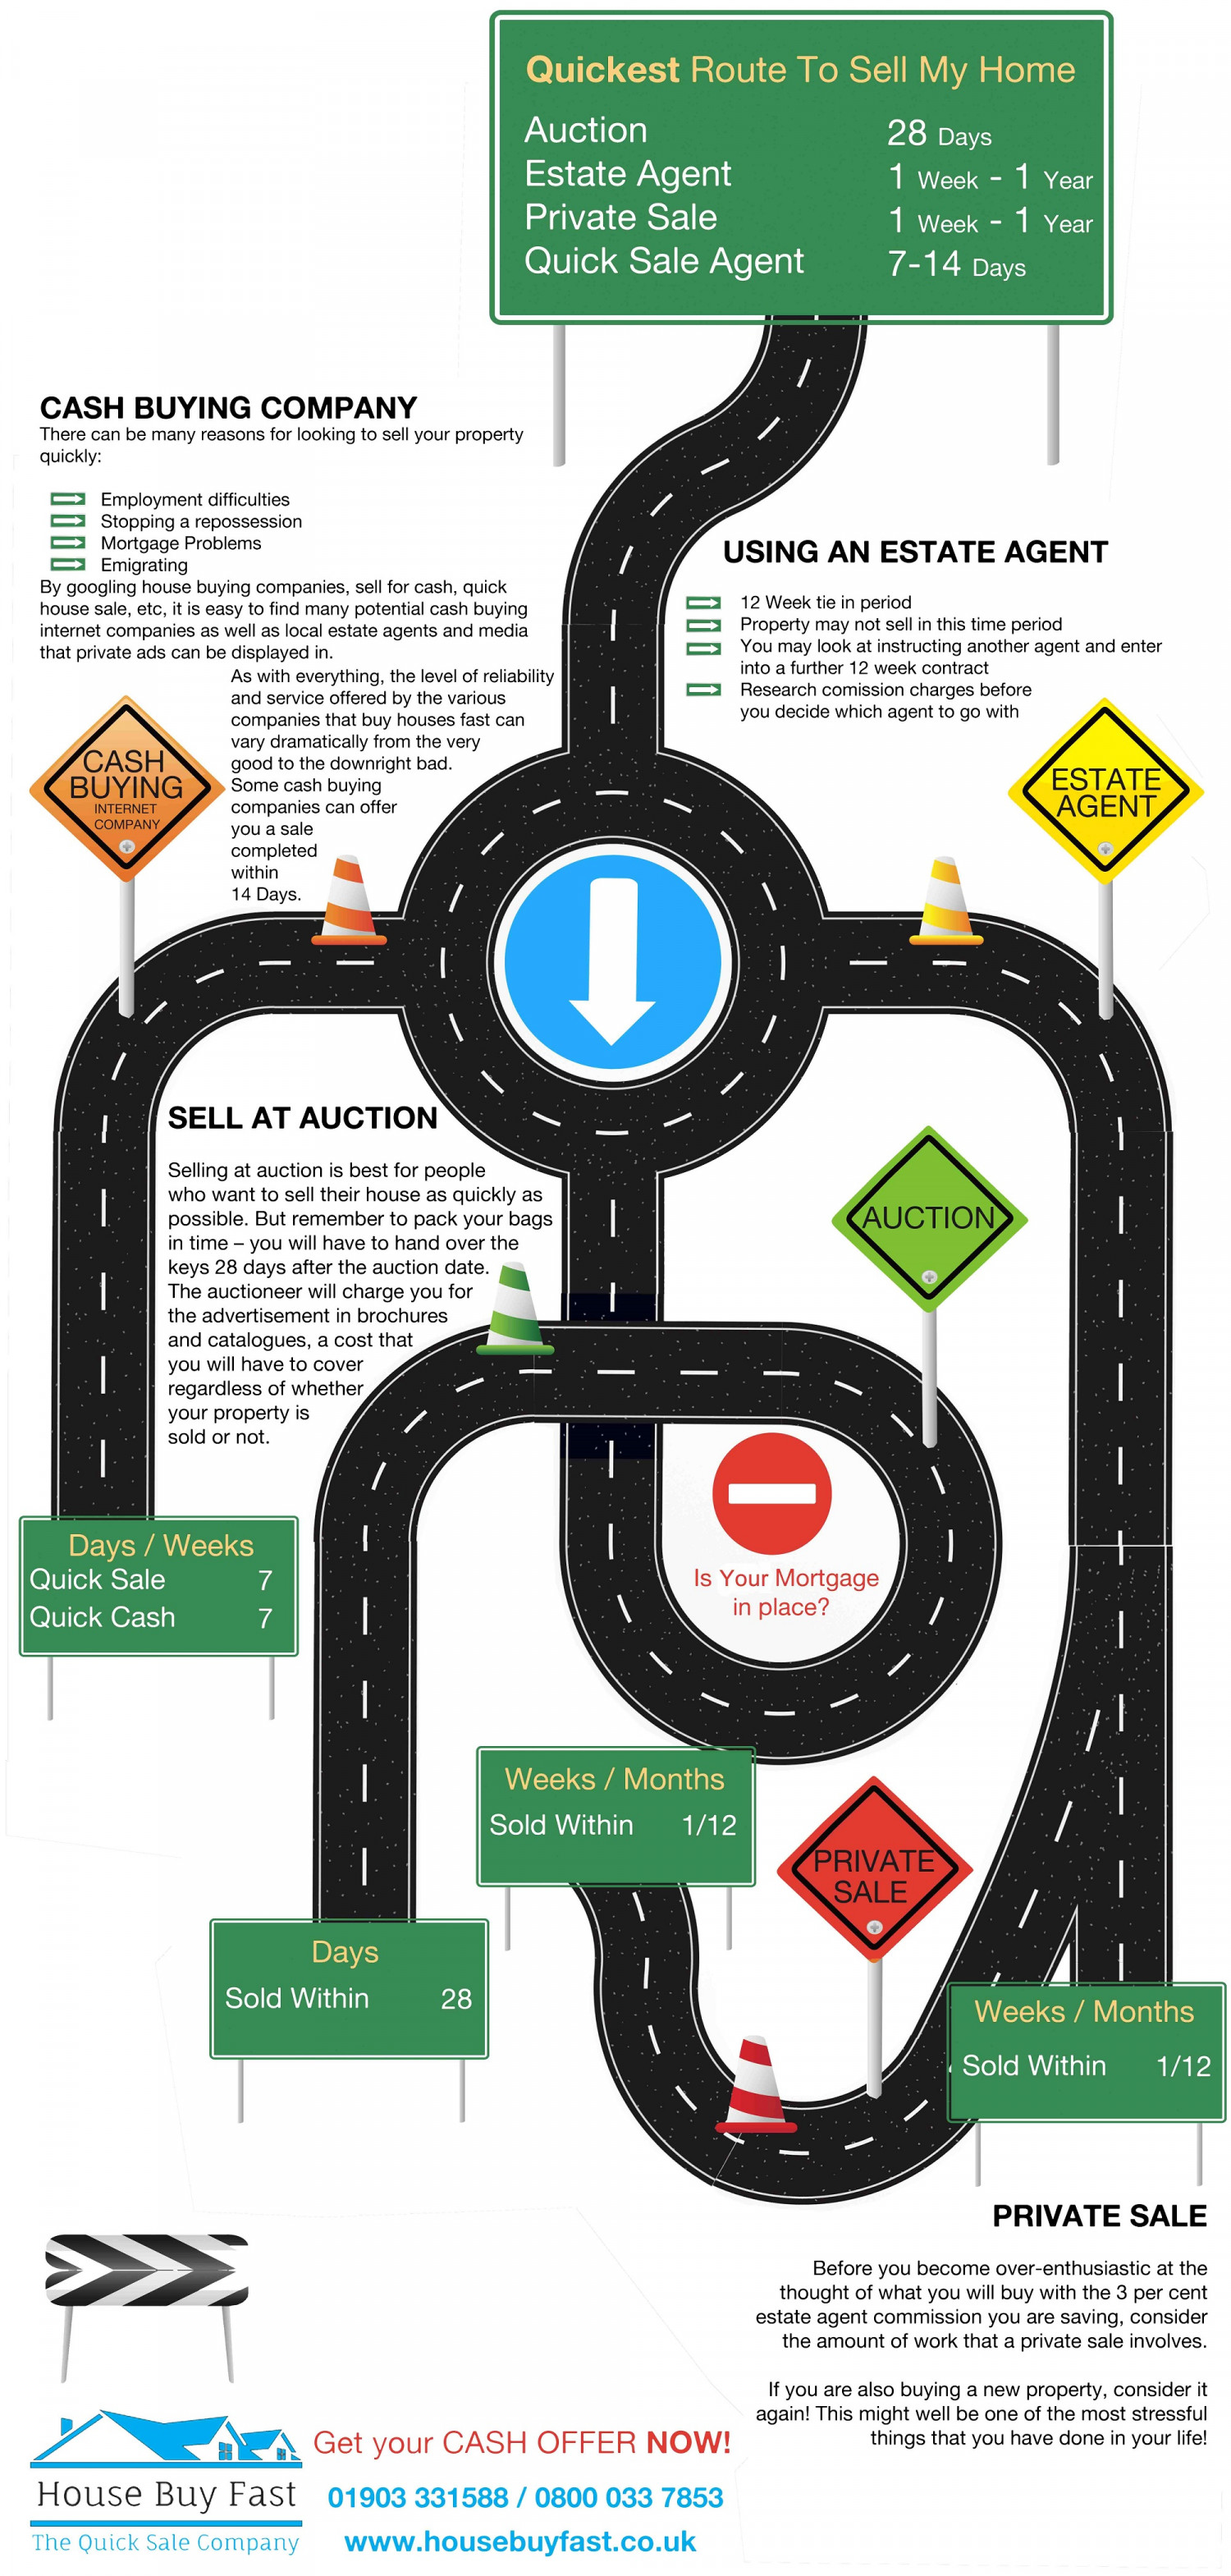 Quickest Route To Sell Your House Infographic